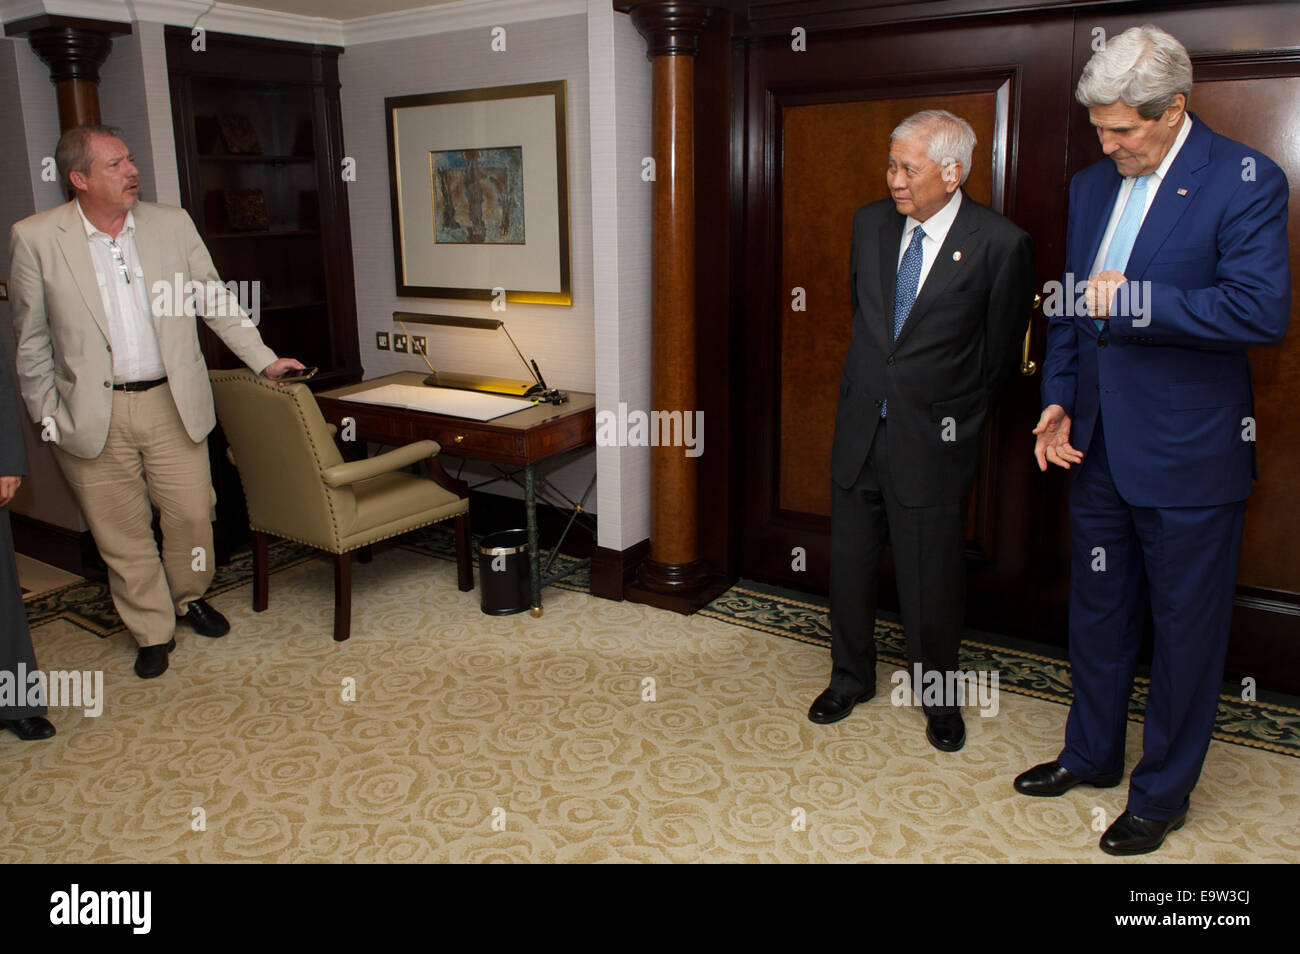 Associated Press reporter Matt Lee questions U.S. Secretary of State John Kerry and Foreign Secretary Albert del - Stock Image